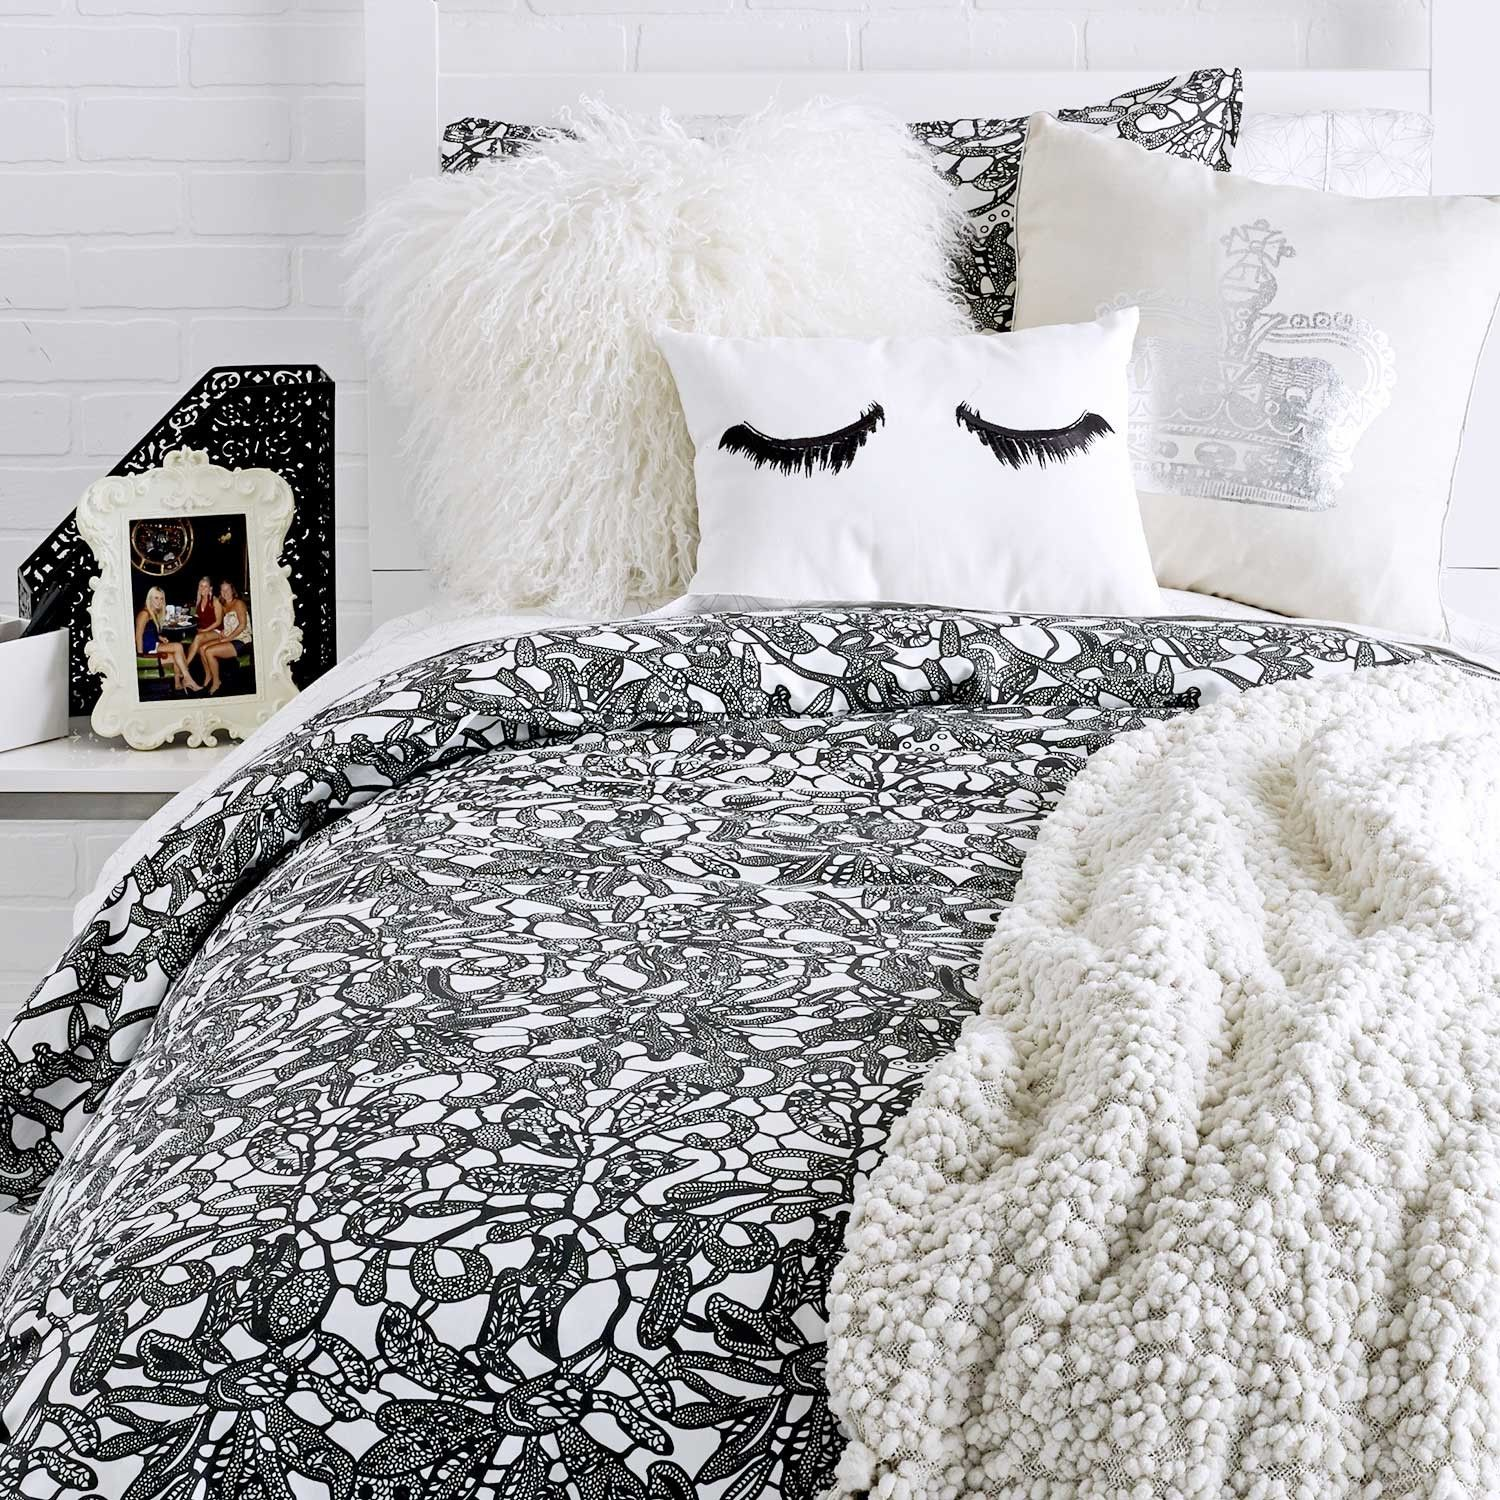 Cute Bedding For College Apartments - Apartment Decorating Ideas